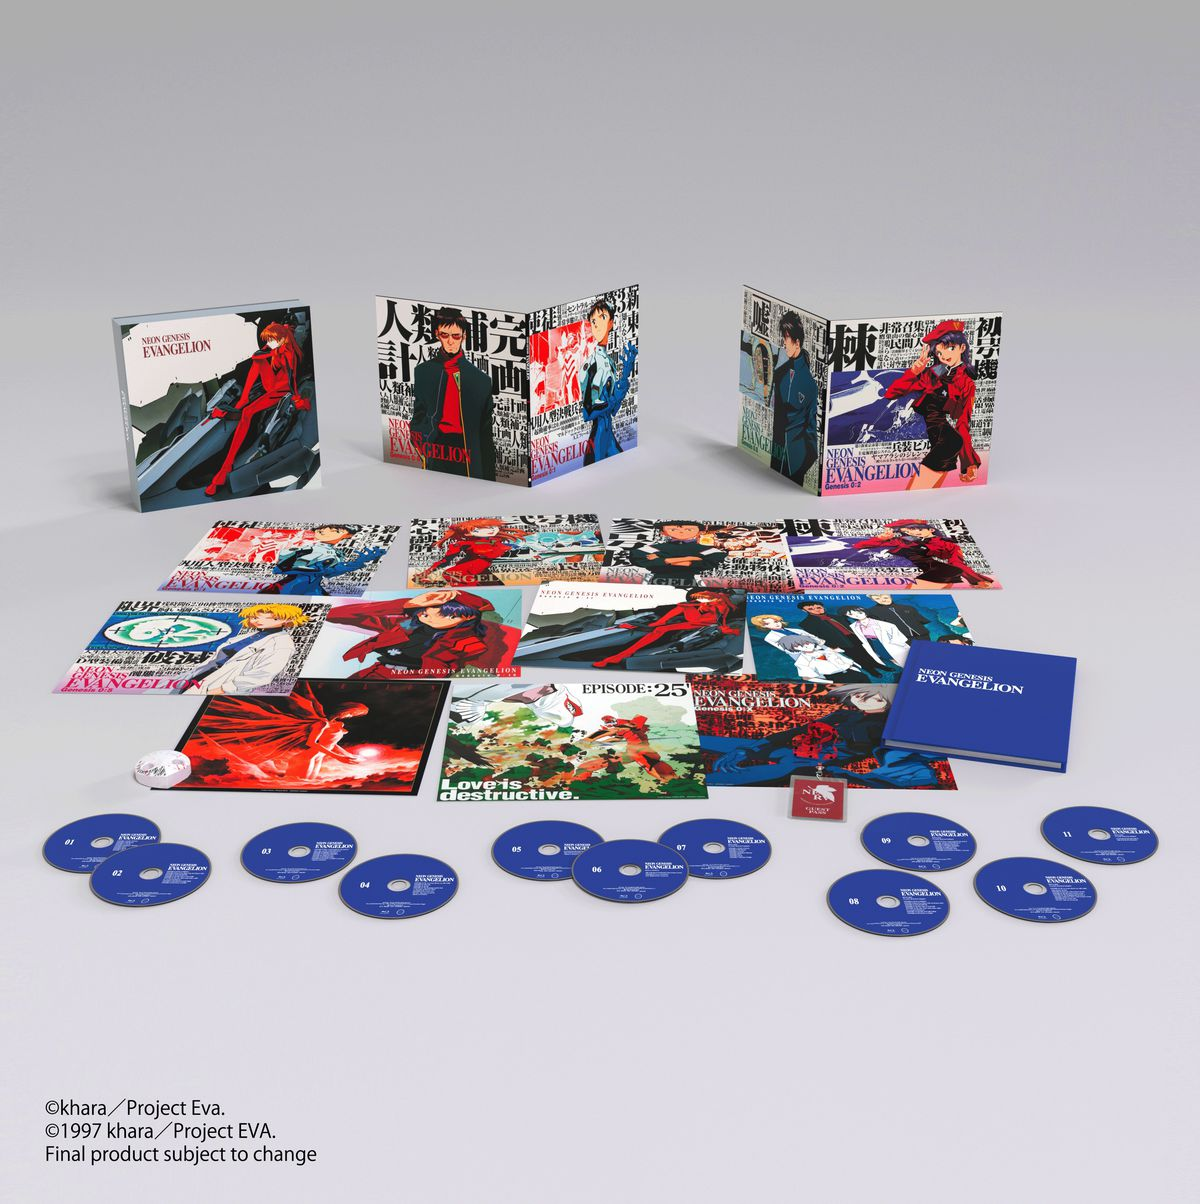 A render of the Neon Genesis Evangelion Ultimate Edition contents, including 11 Blu-ray discs